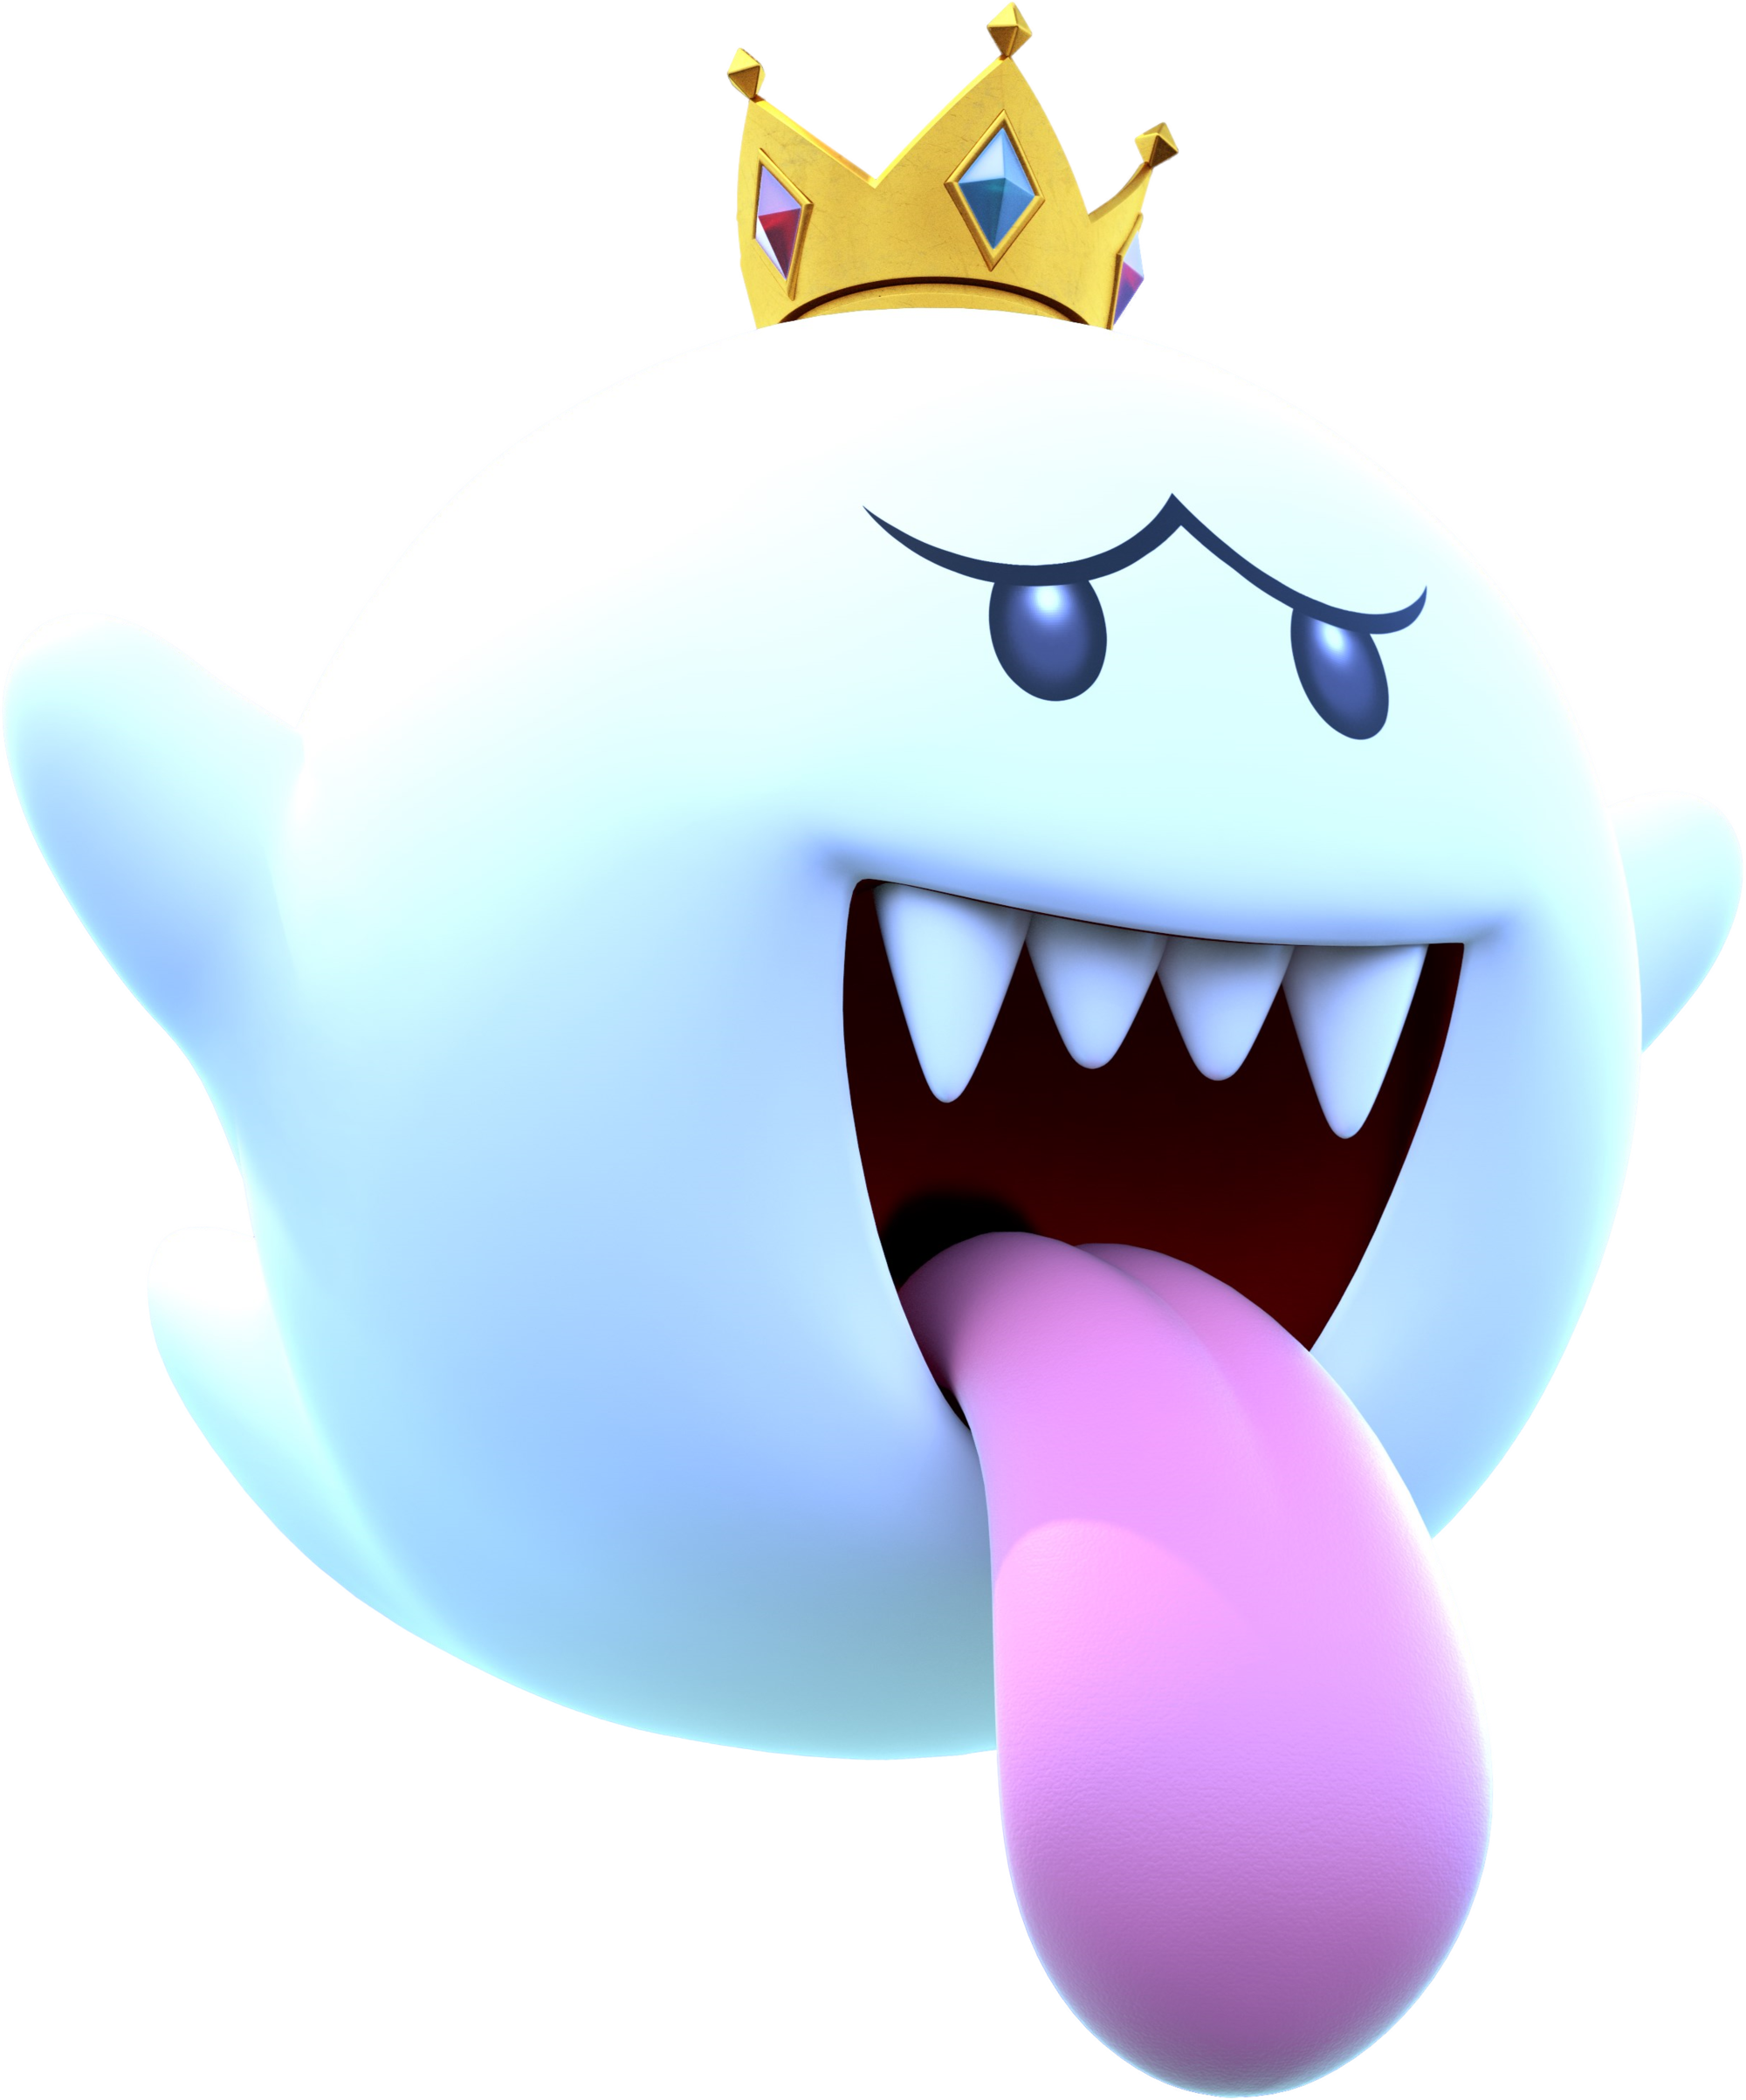 King Boo Is The Leader And King Of The Boos And The Arch Enemy Of Luigi He First Appears In Luigi S Mansion As The M King Boo Luigi S Mansion Super Smash